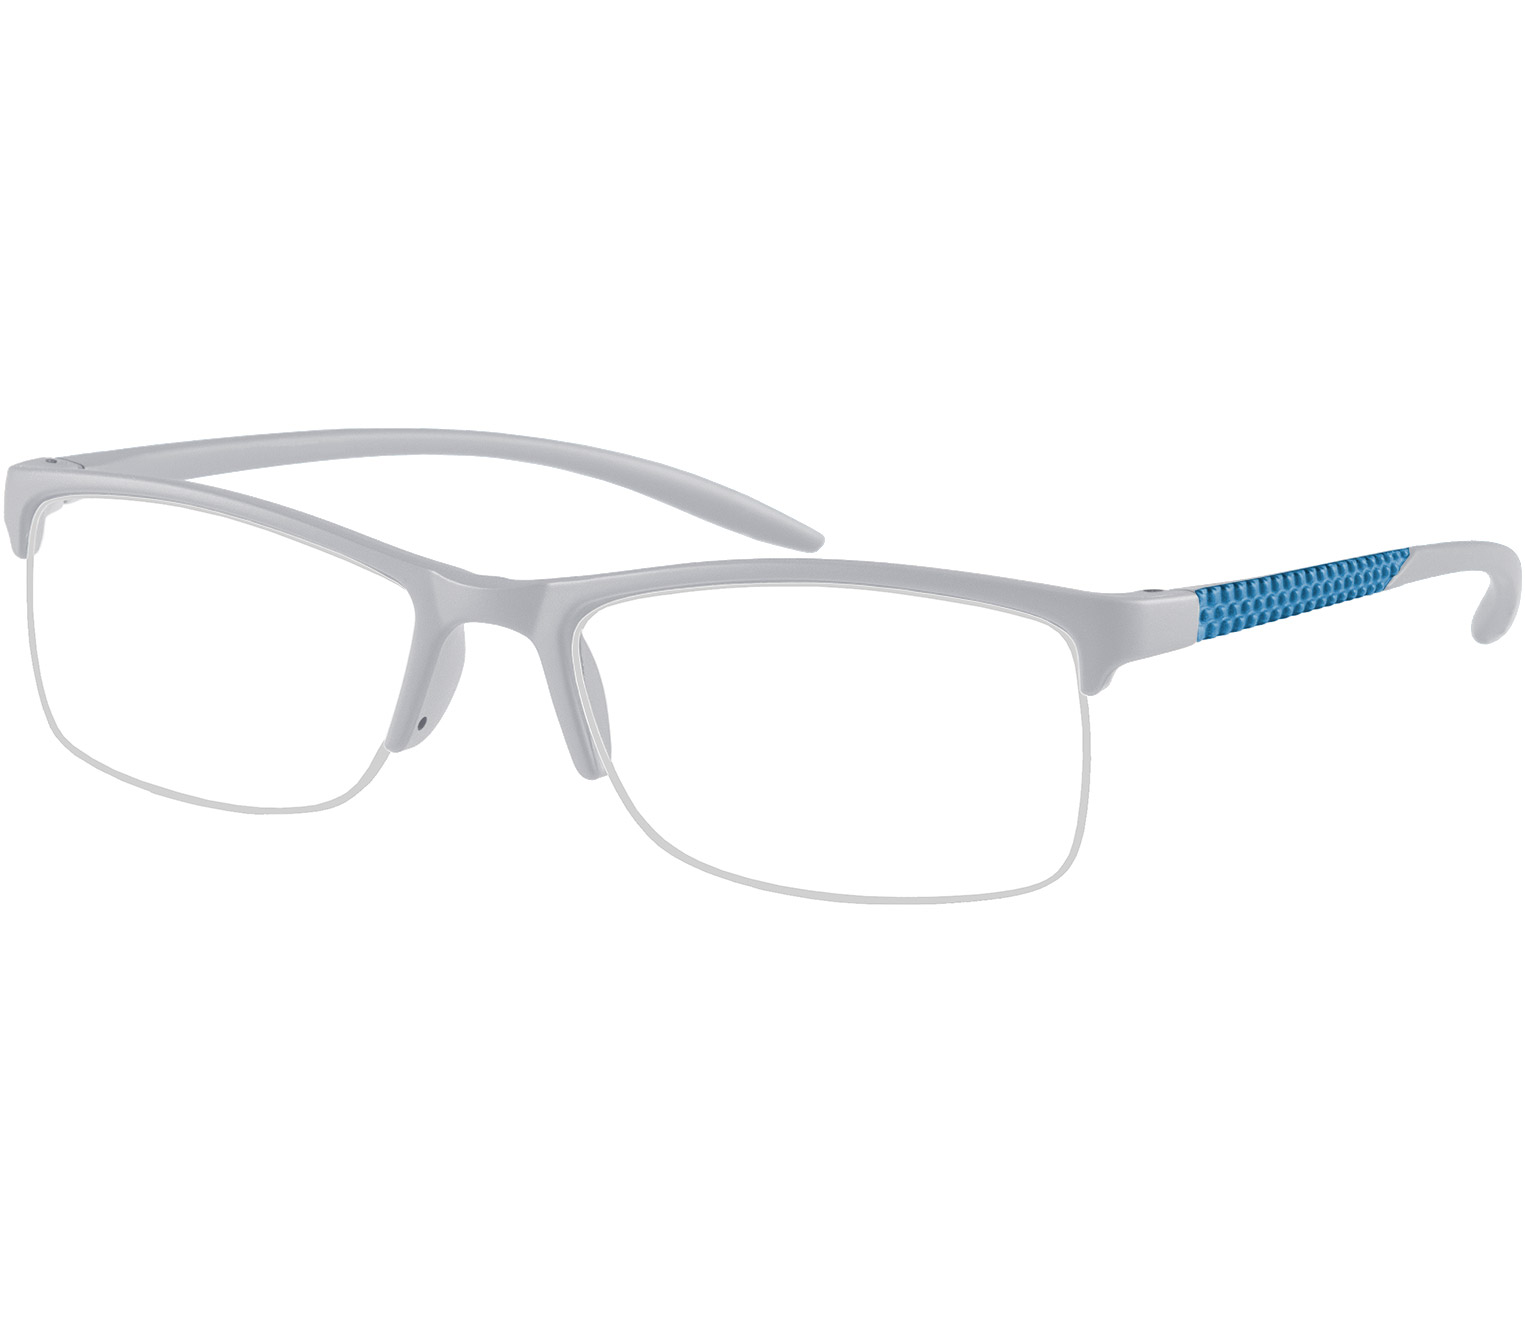 Main Image (Angle) - Solent (Grey) Semi-rimless Reading Glasses